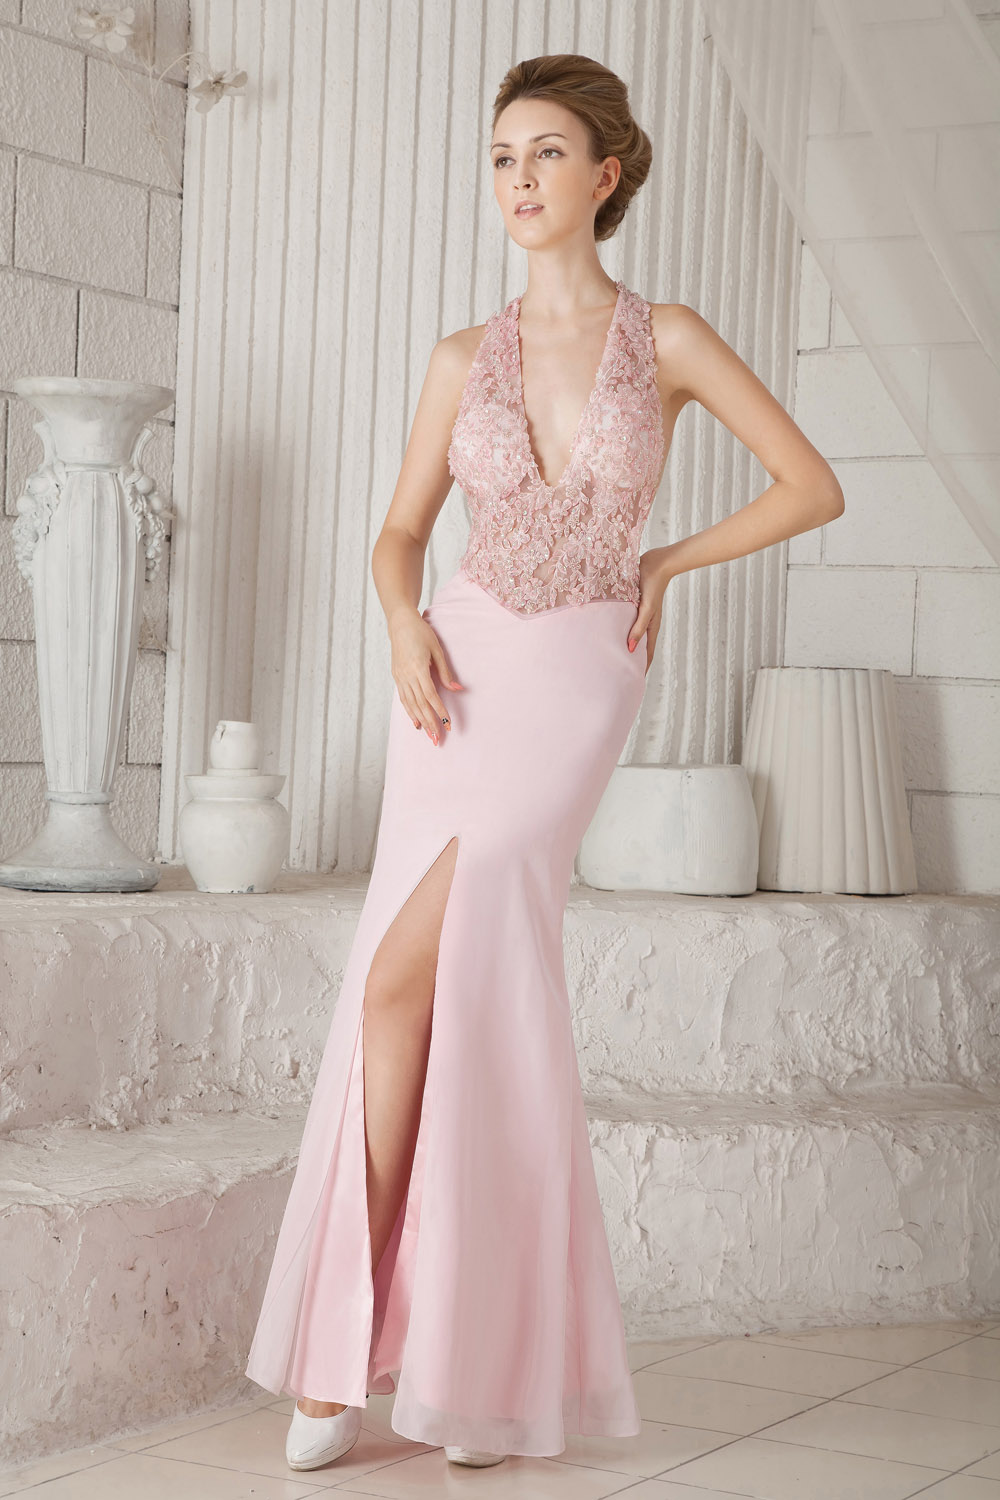 Trumpet/Mermaid Sheath/Column V-neck Sweep/Brush Train Satin Evening Dress